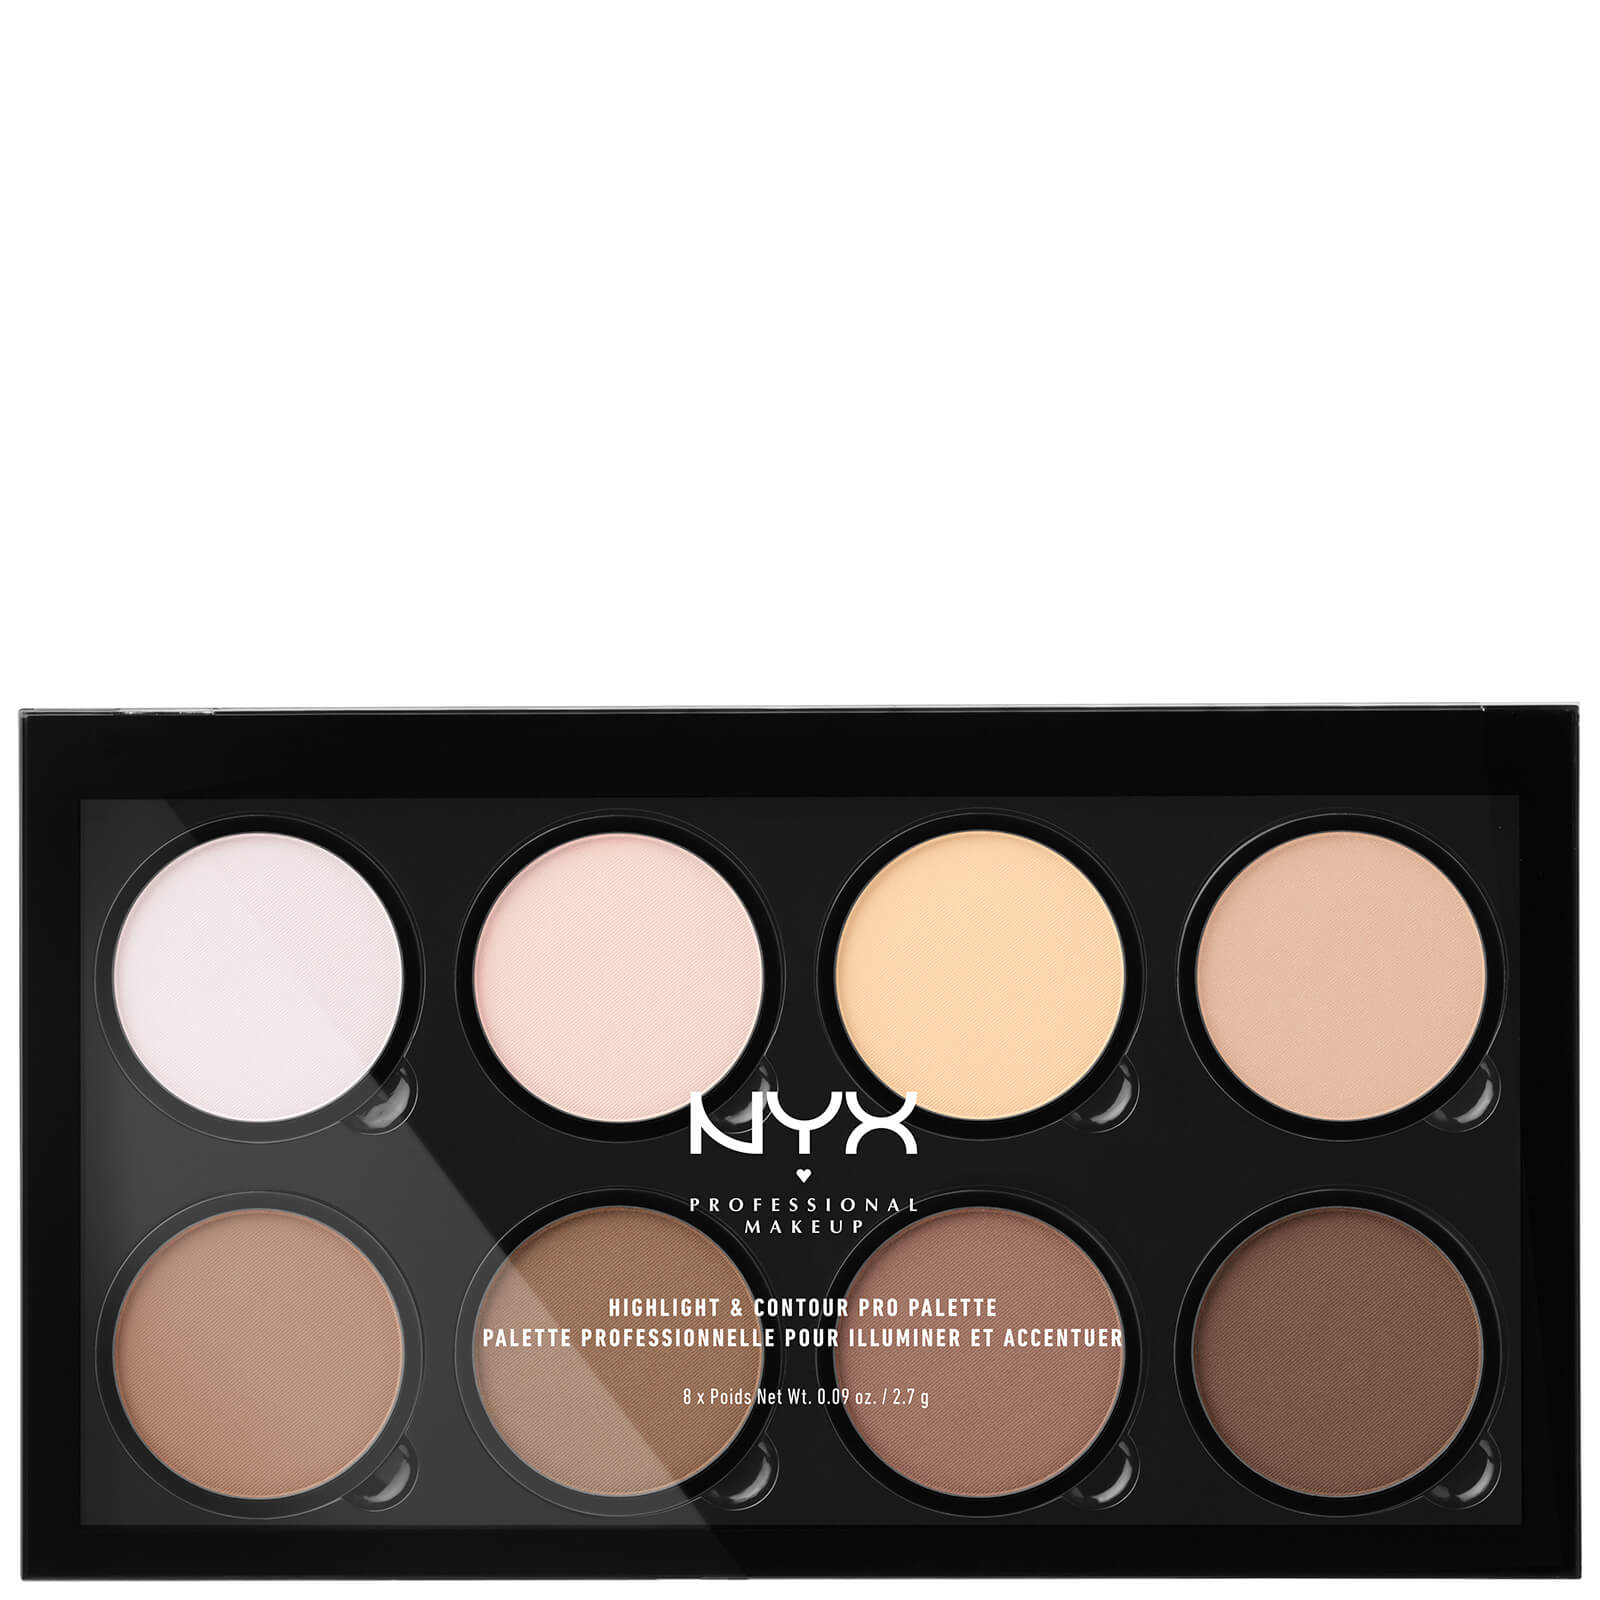 Style with attitude: NYX Professional Makeup Highlight & Contour Pro Palette